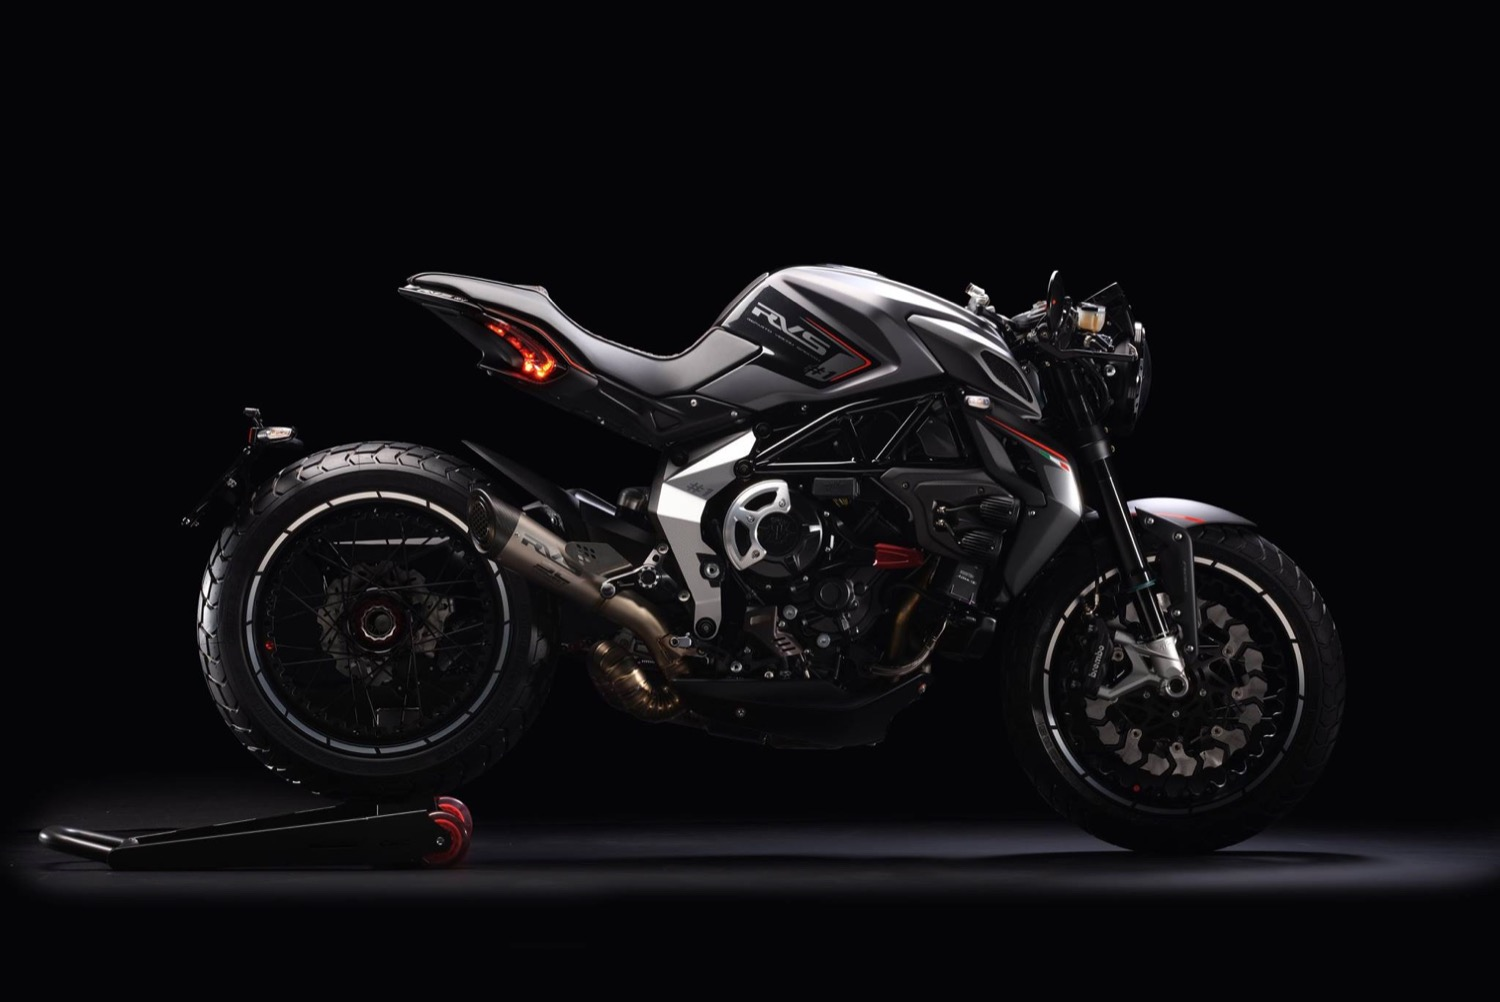 MV Agusta RVS, de Varese con 150 cv para 160 kg y la mayor exclusividad posible